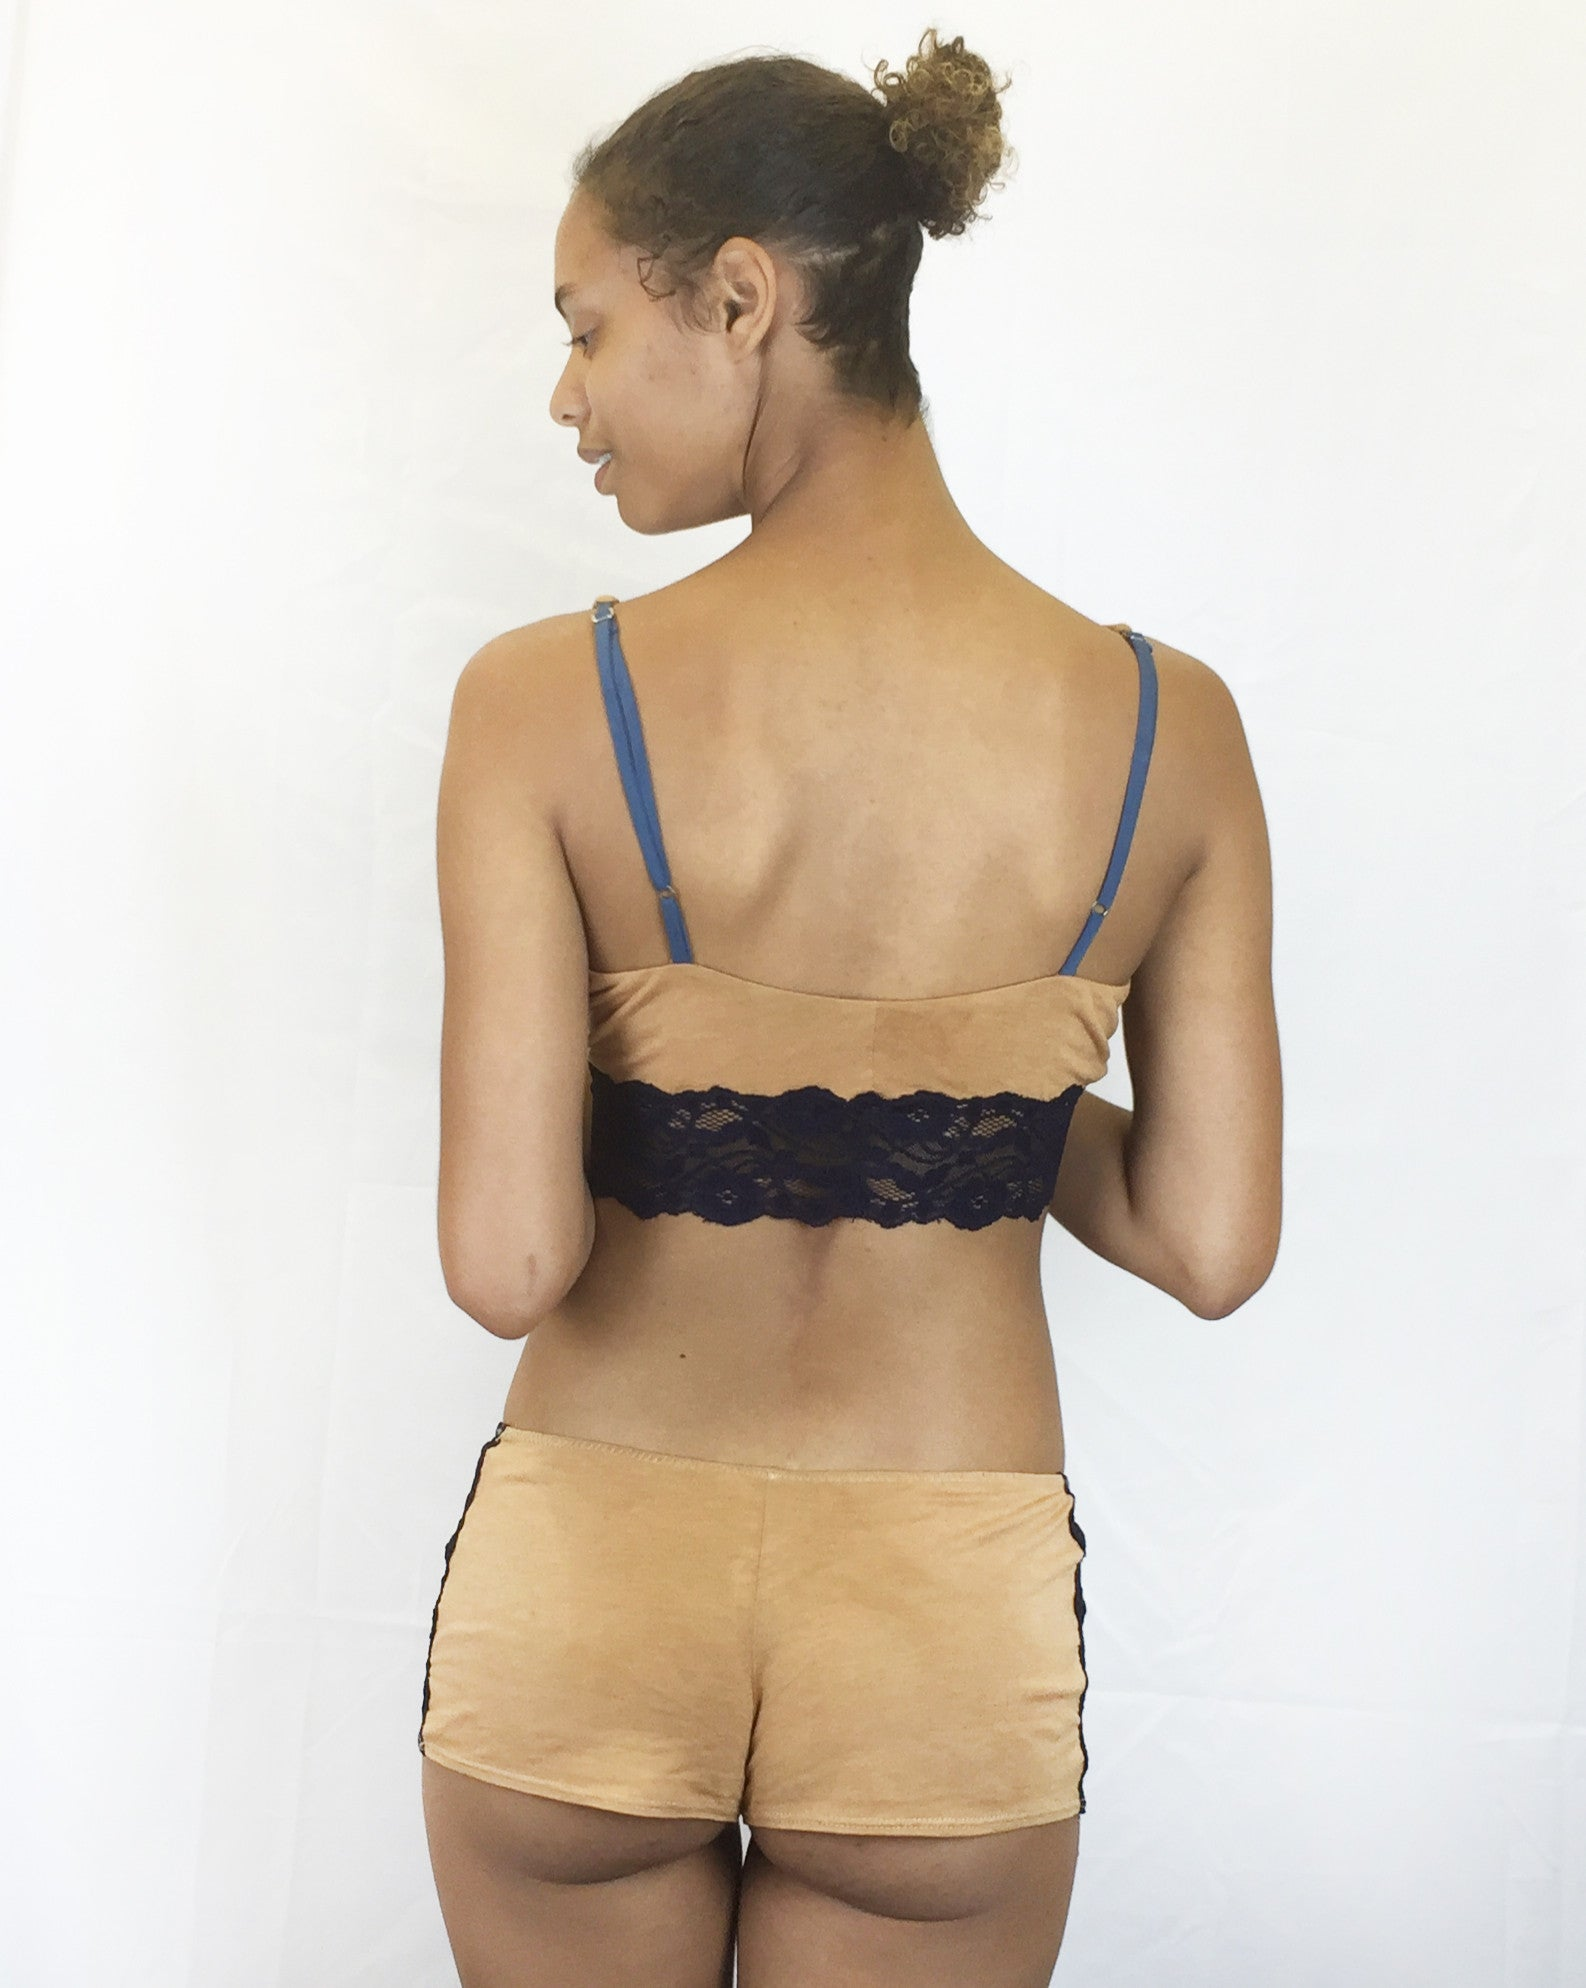 Larkspur - Trudie Bralette and Tap Pants Lingerie Set - Tobacco/Navy